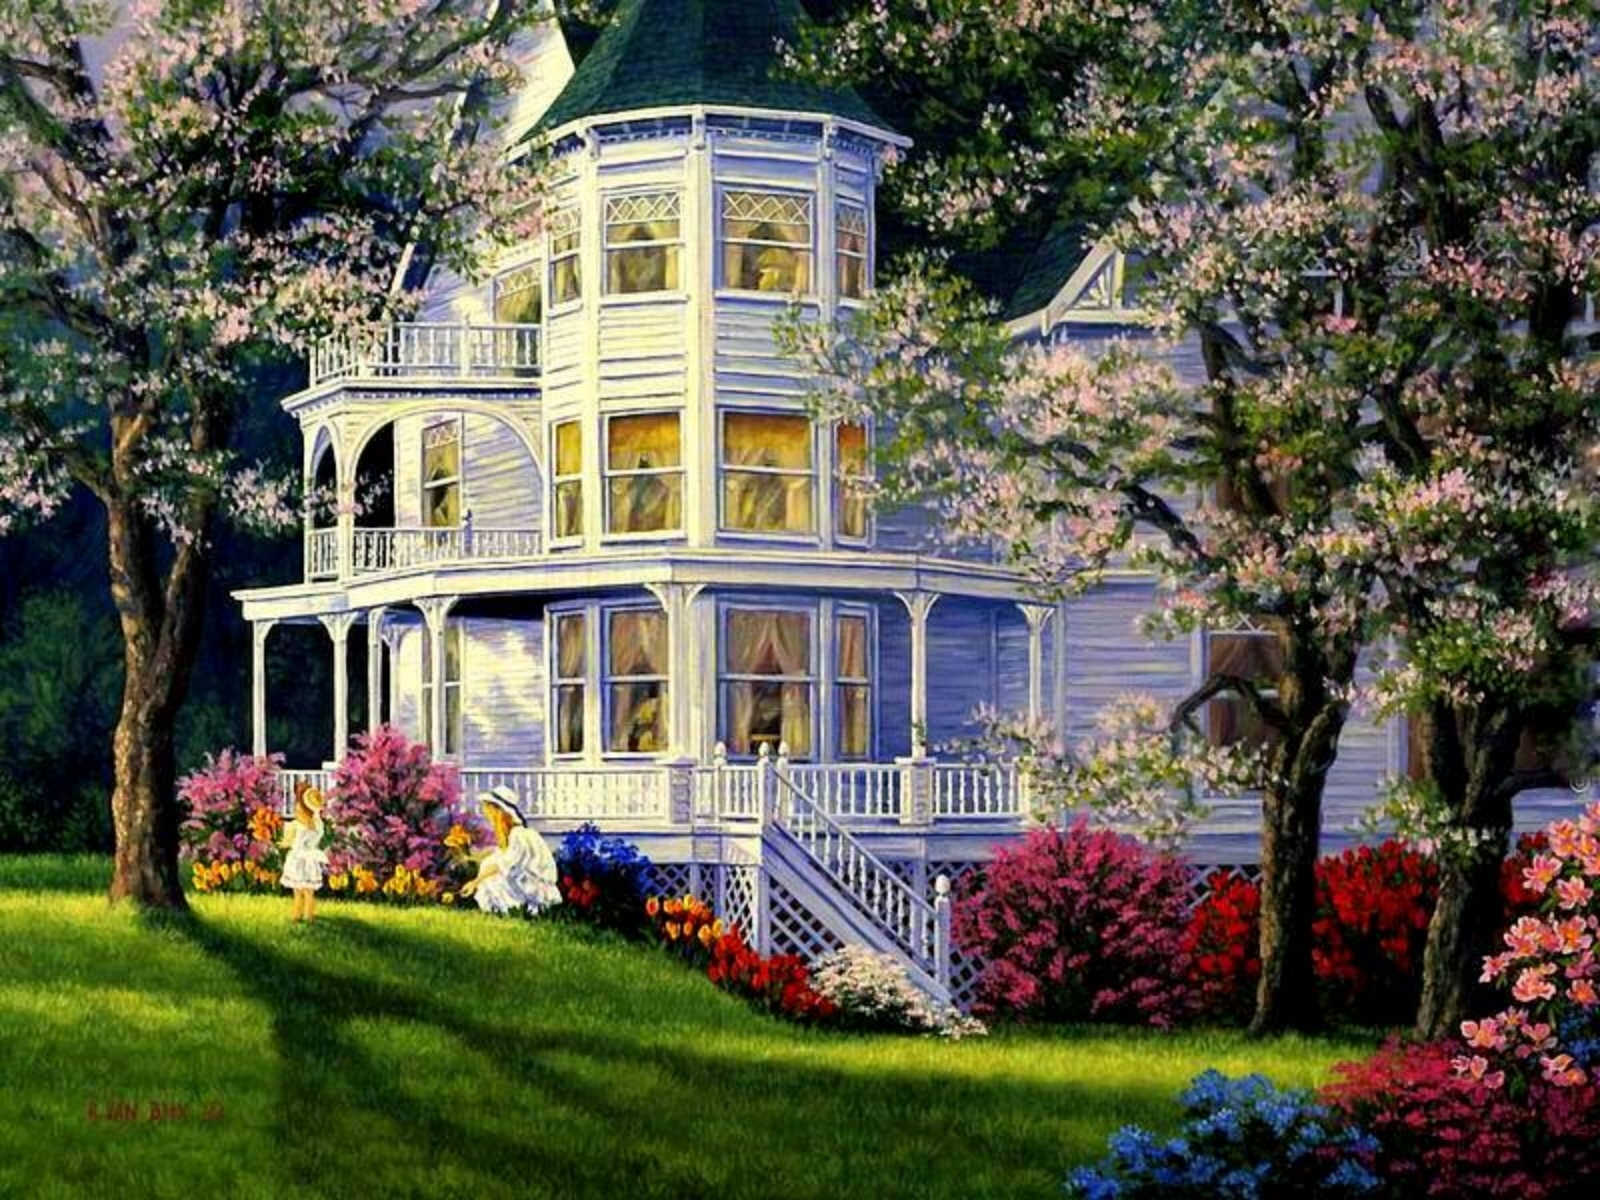 house wallpaper,home,house,property,estate,building